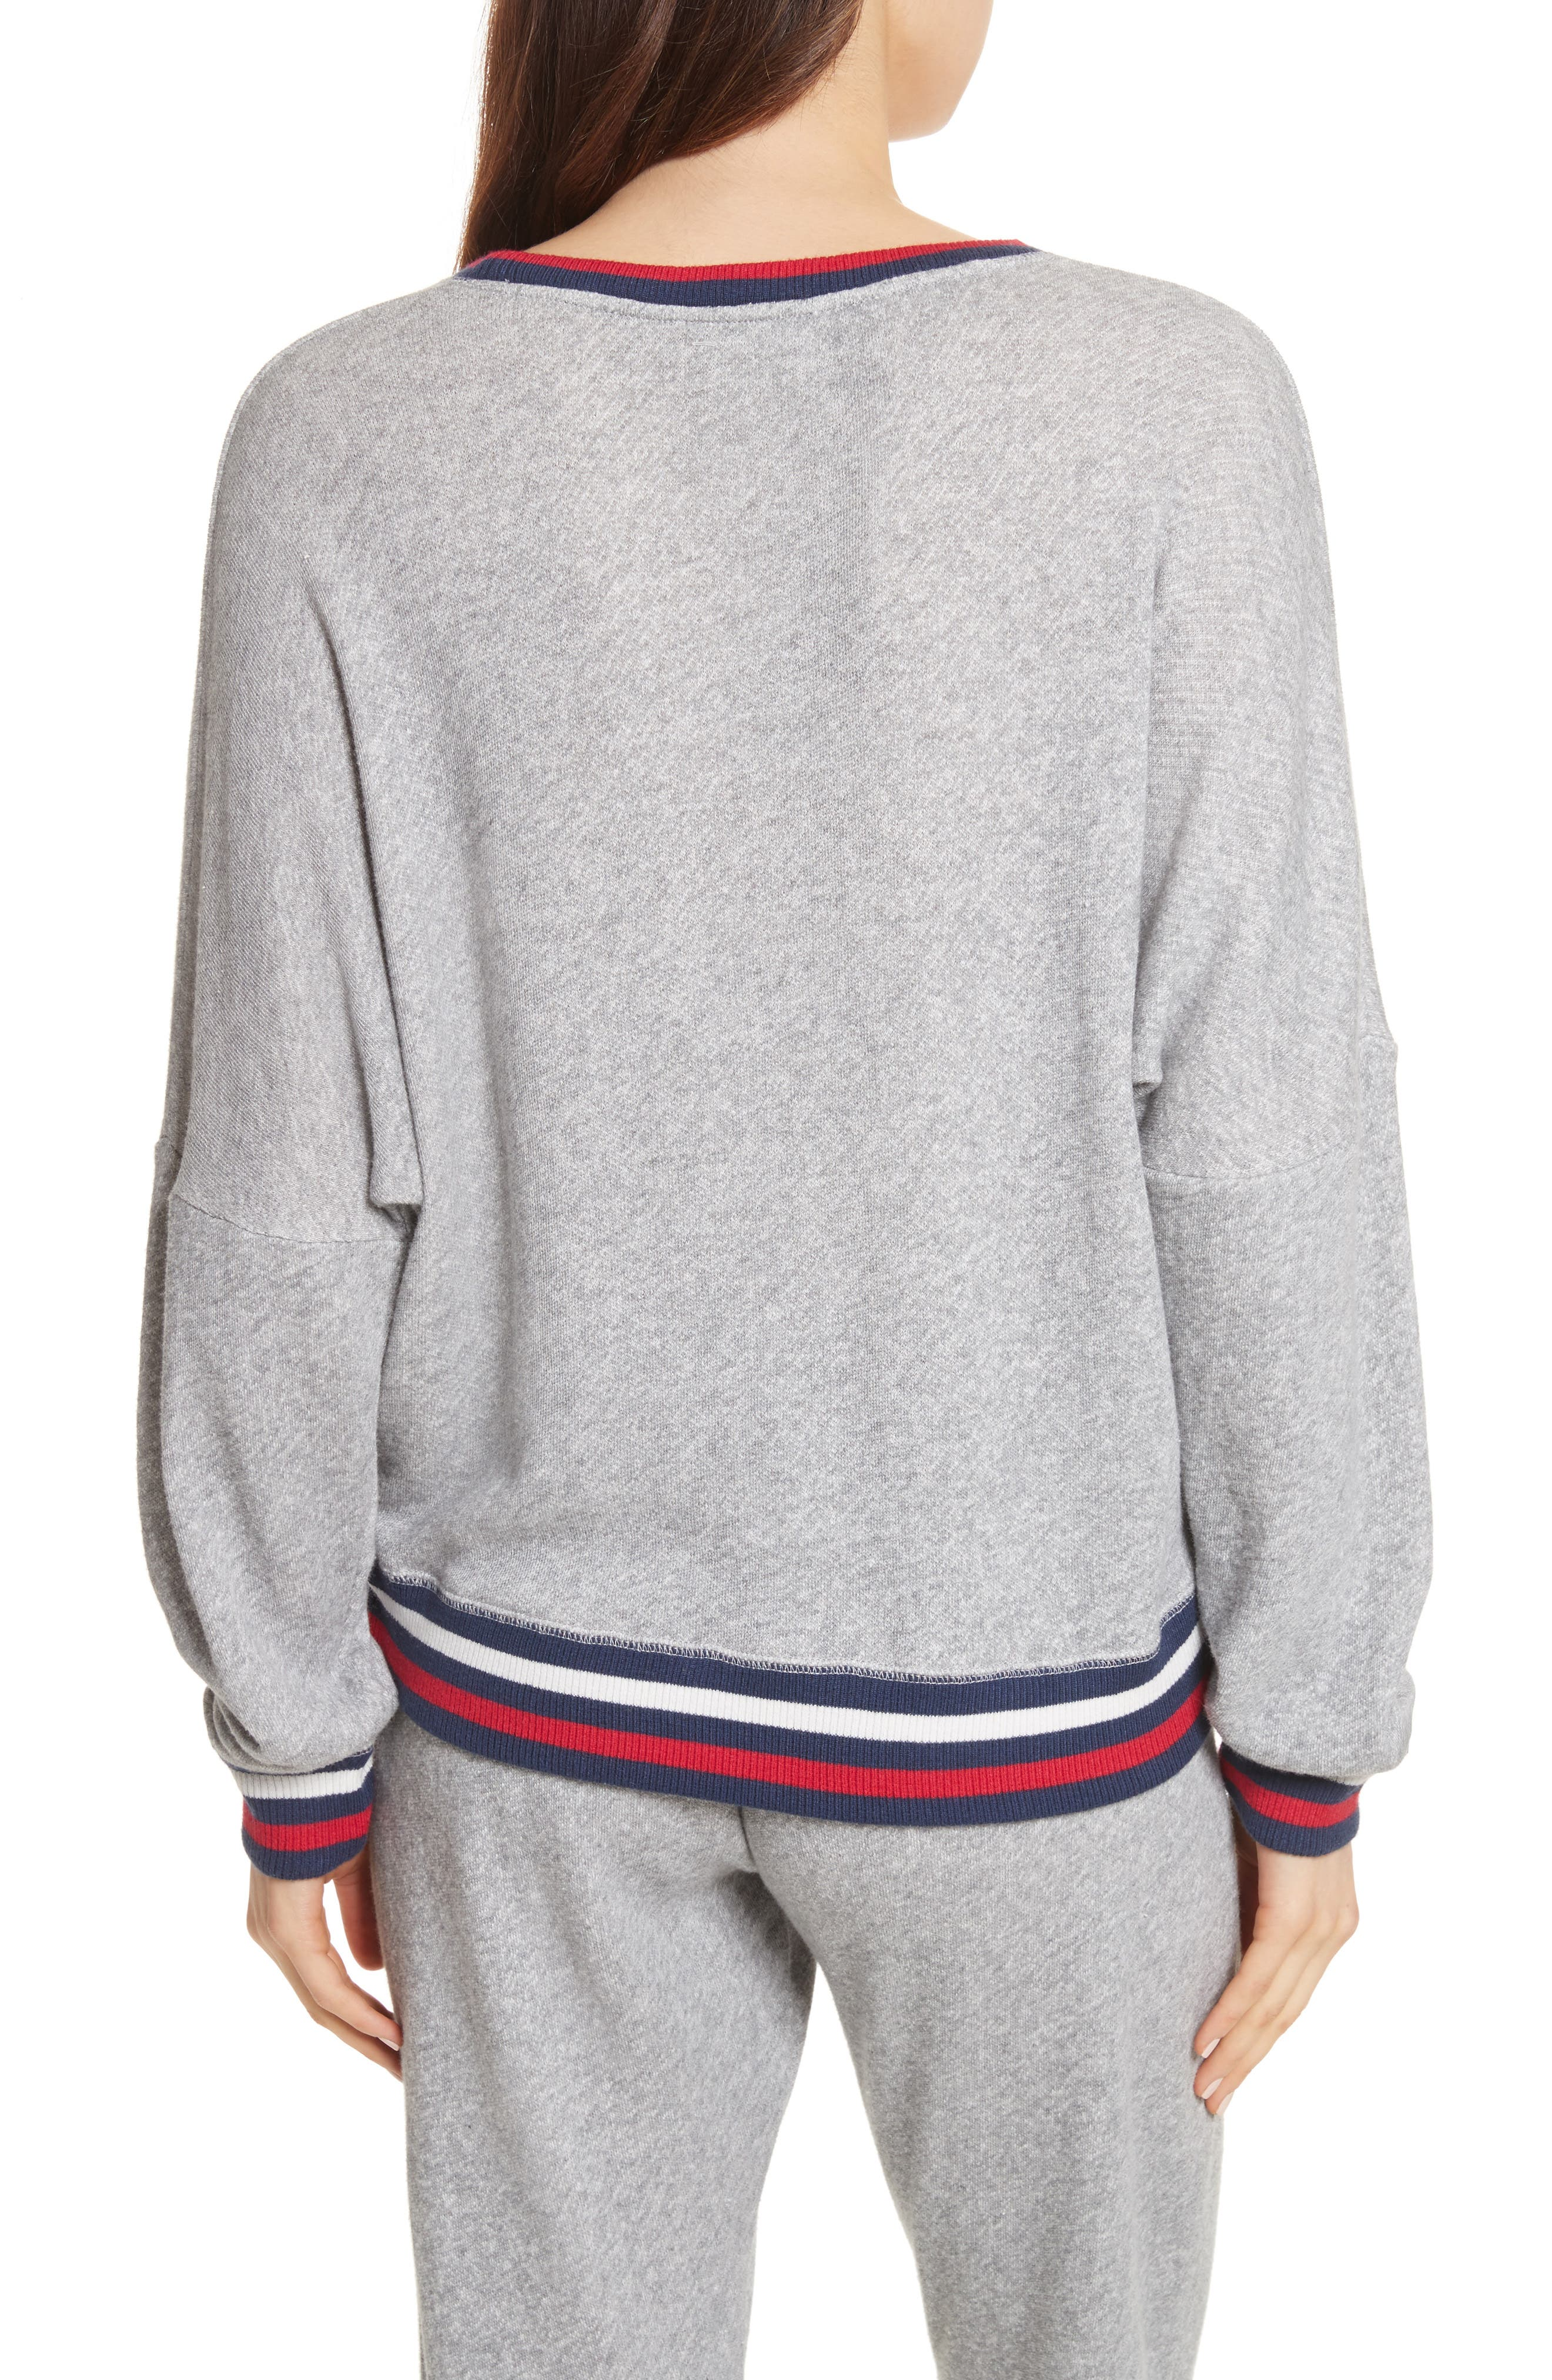 JOIE,                             Richardine B Sweatshirt,                             Alternate thumbnail 2, color,                             033